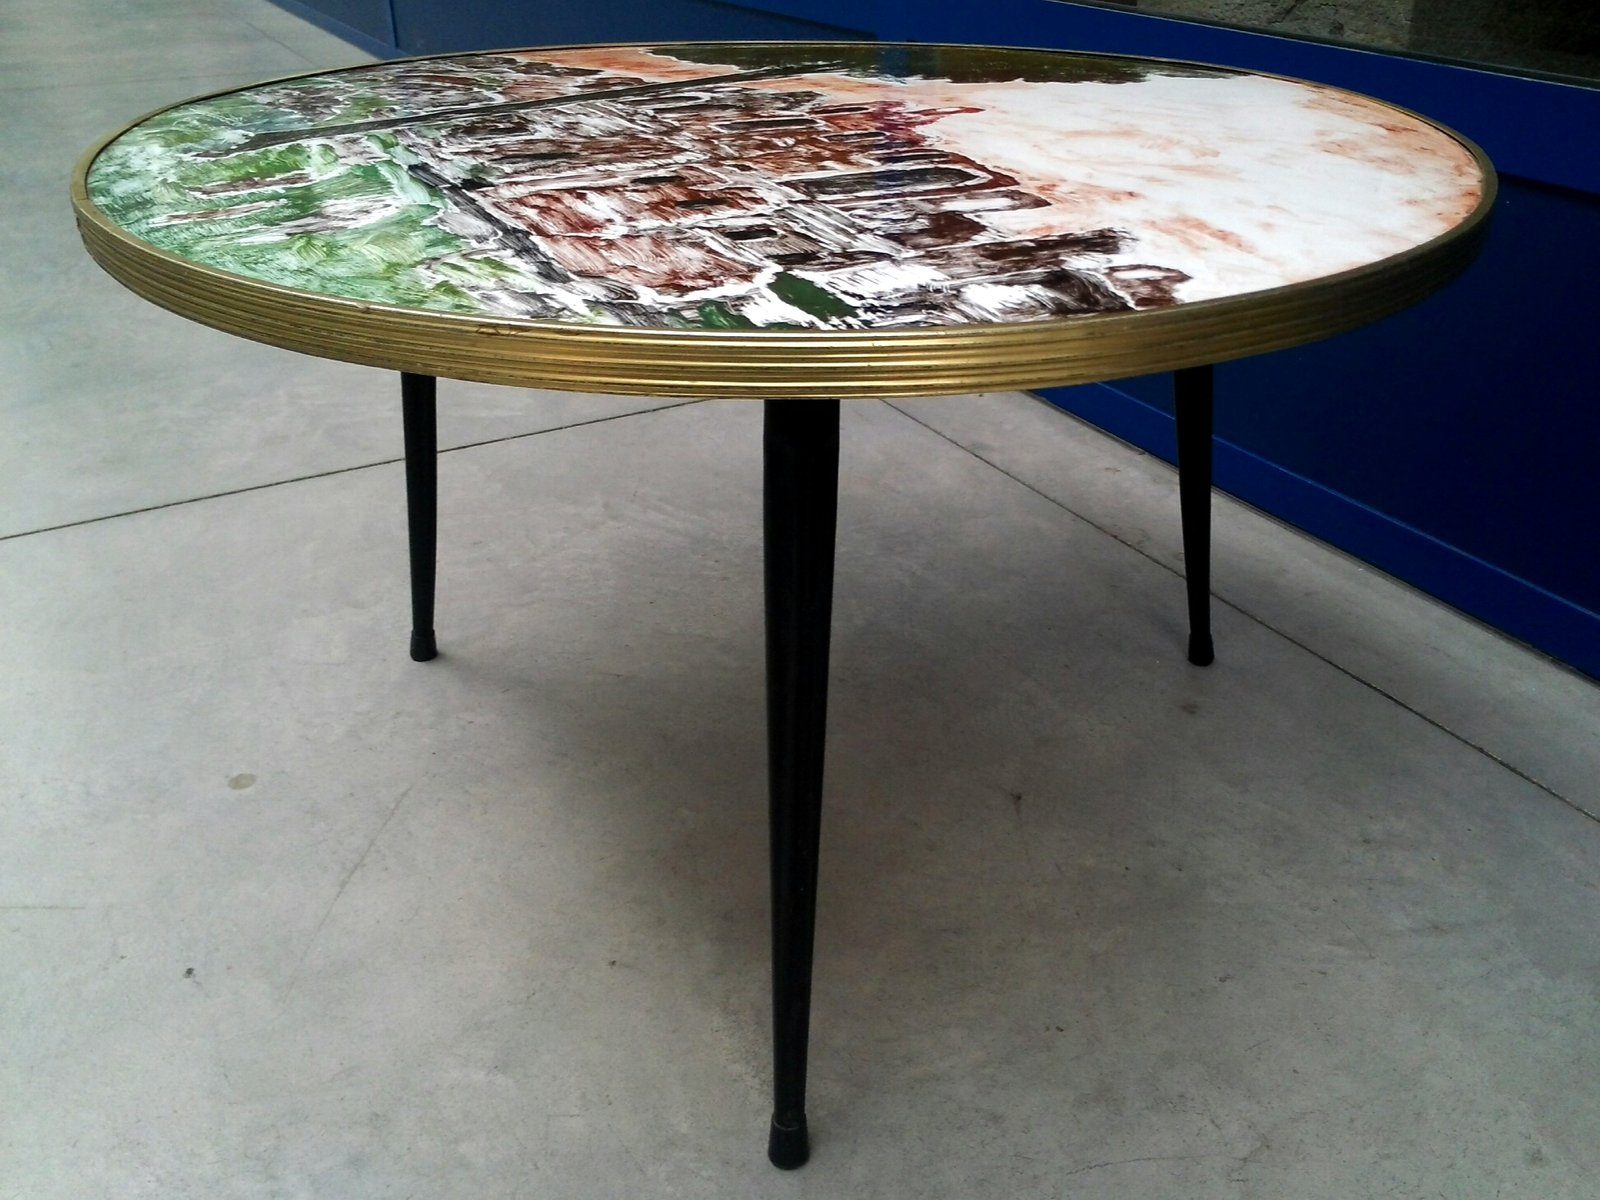 Italian Painted Coffee Table 1959 for sale at Pamono